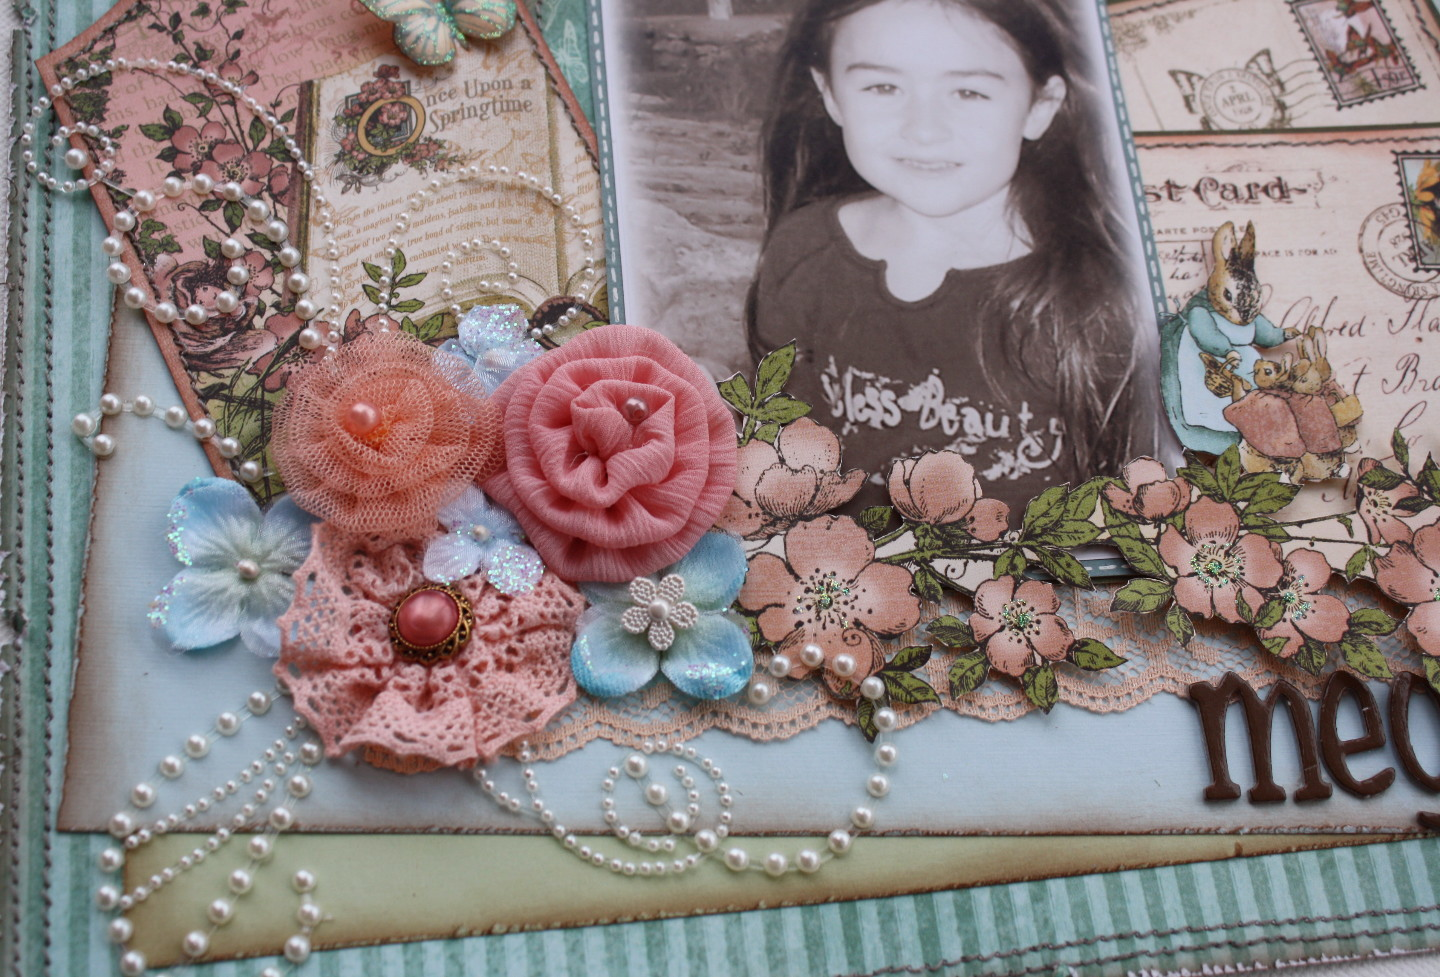 How to make a romantic scrapbook -  Found In The Kit And Did A Little Fussy Cutting Of One Of The Floral Papers To Make The Floral Design Here Are A Couple Of Close Up Pic S Of The Page